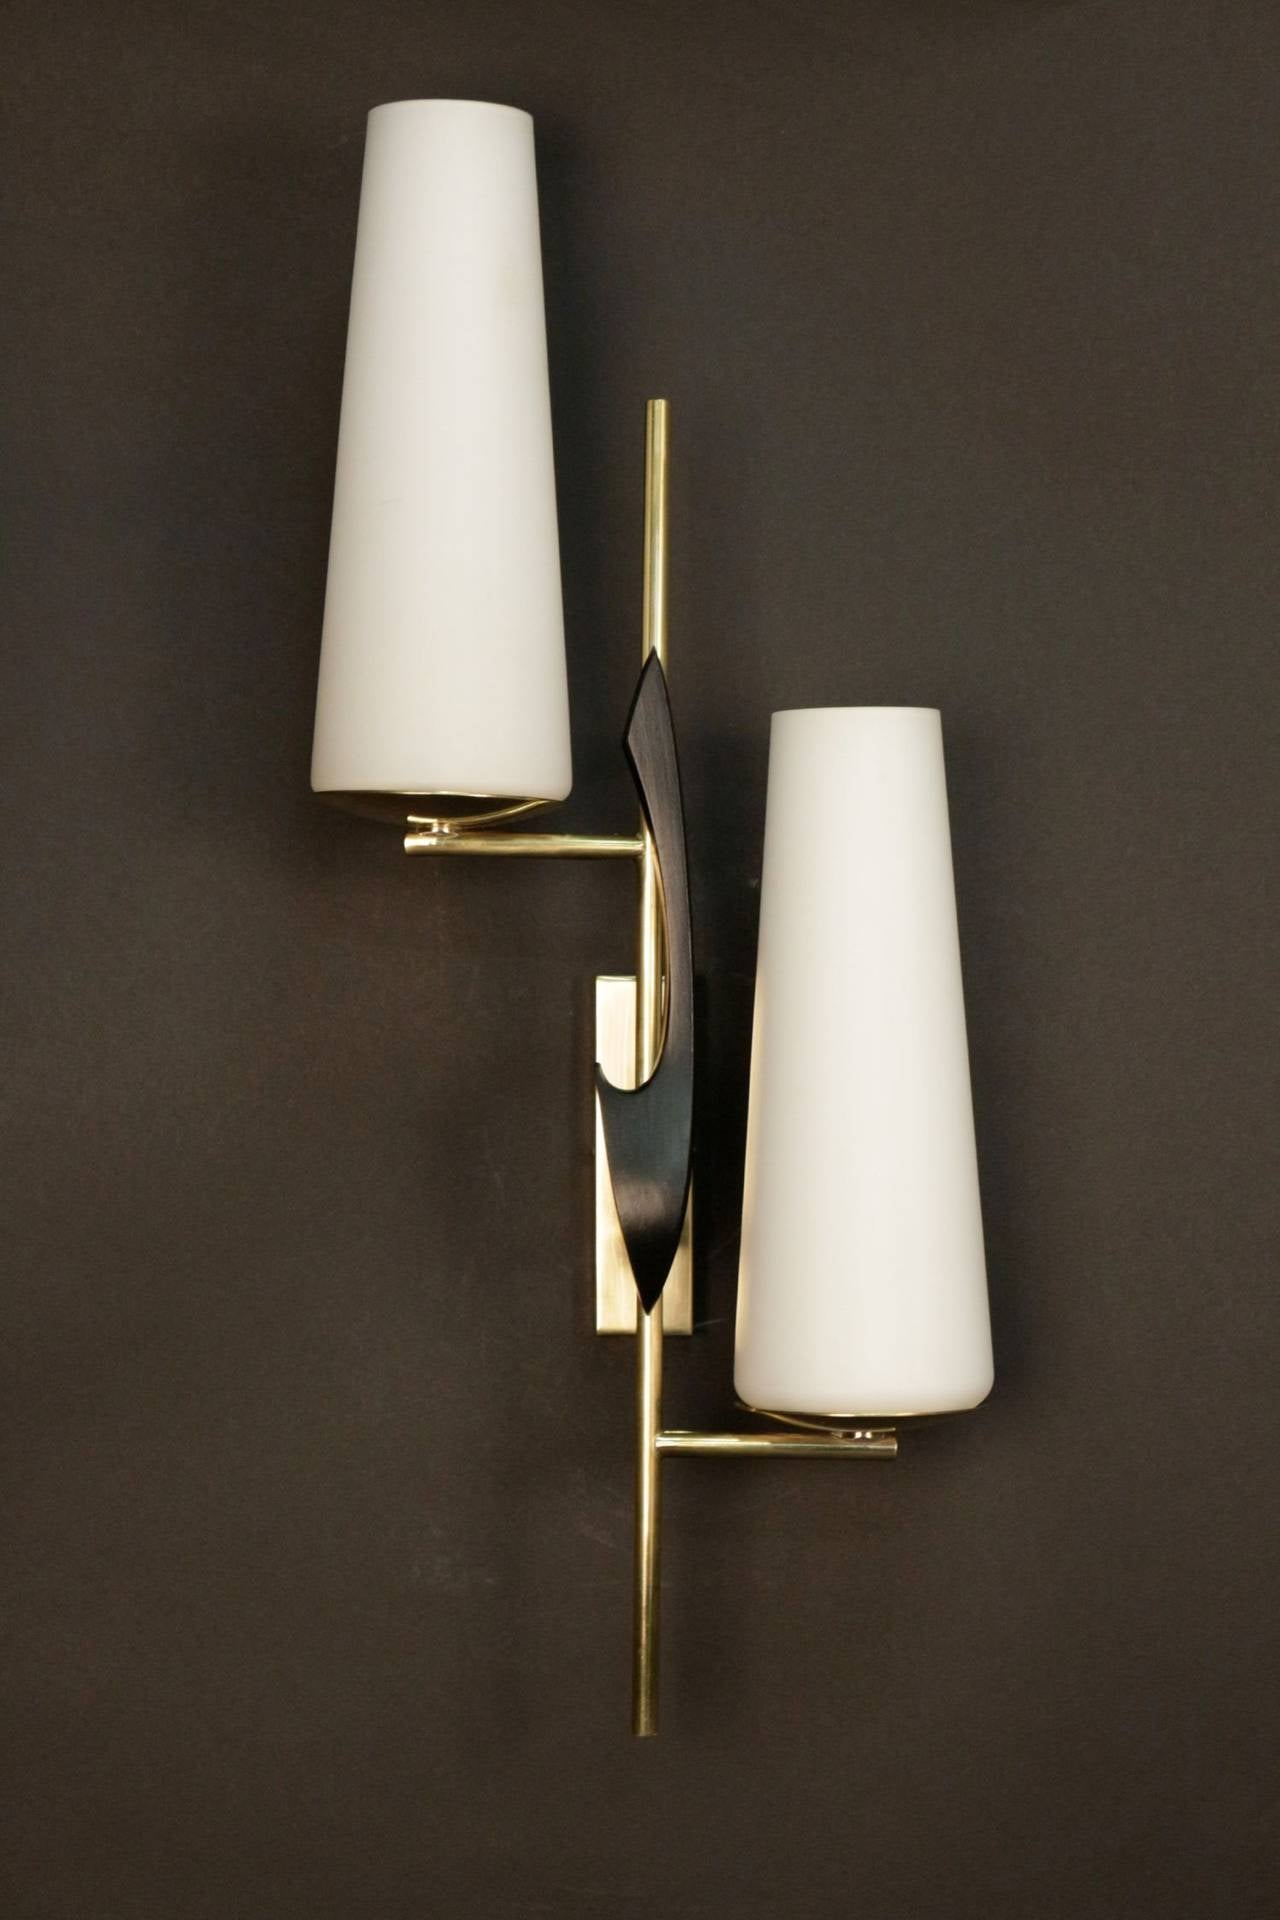 Pair Of 1950s Asymmetrical Sconces By Maison Arlus At 1stdibs